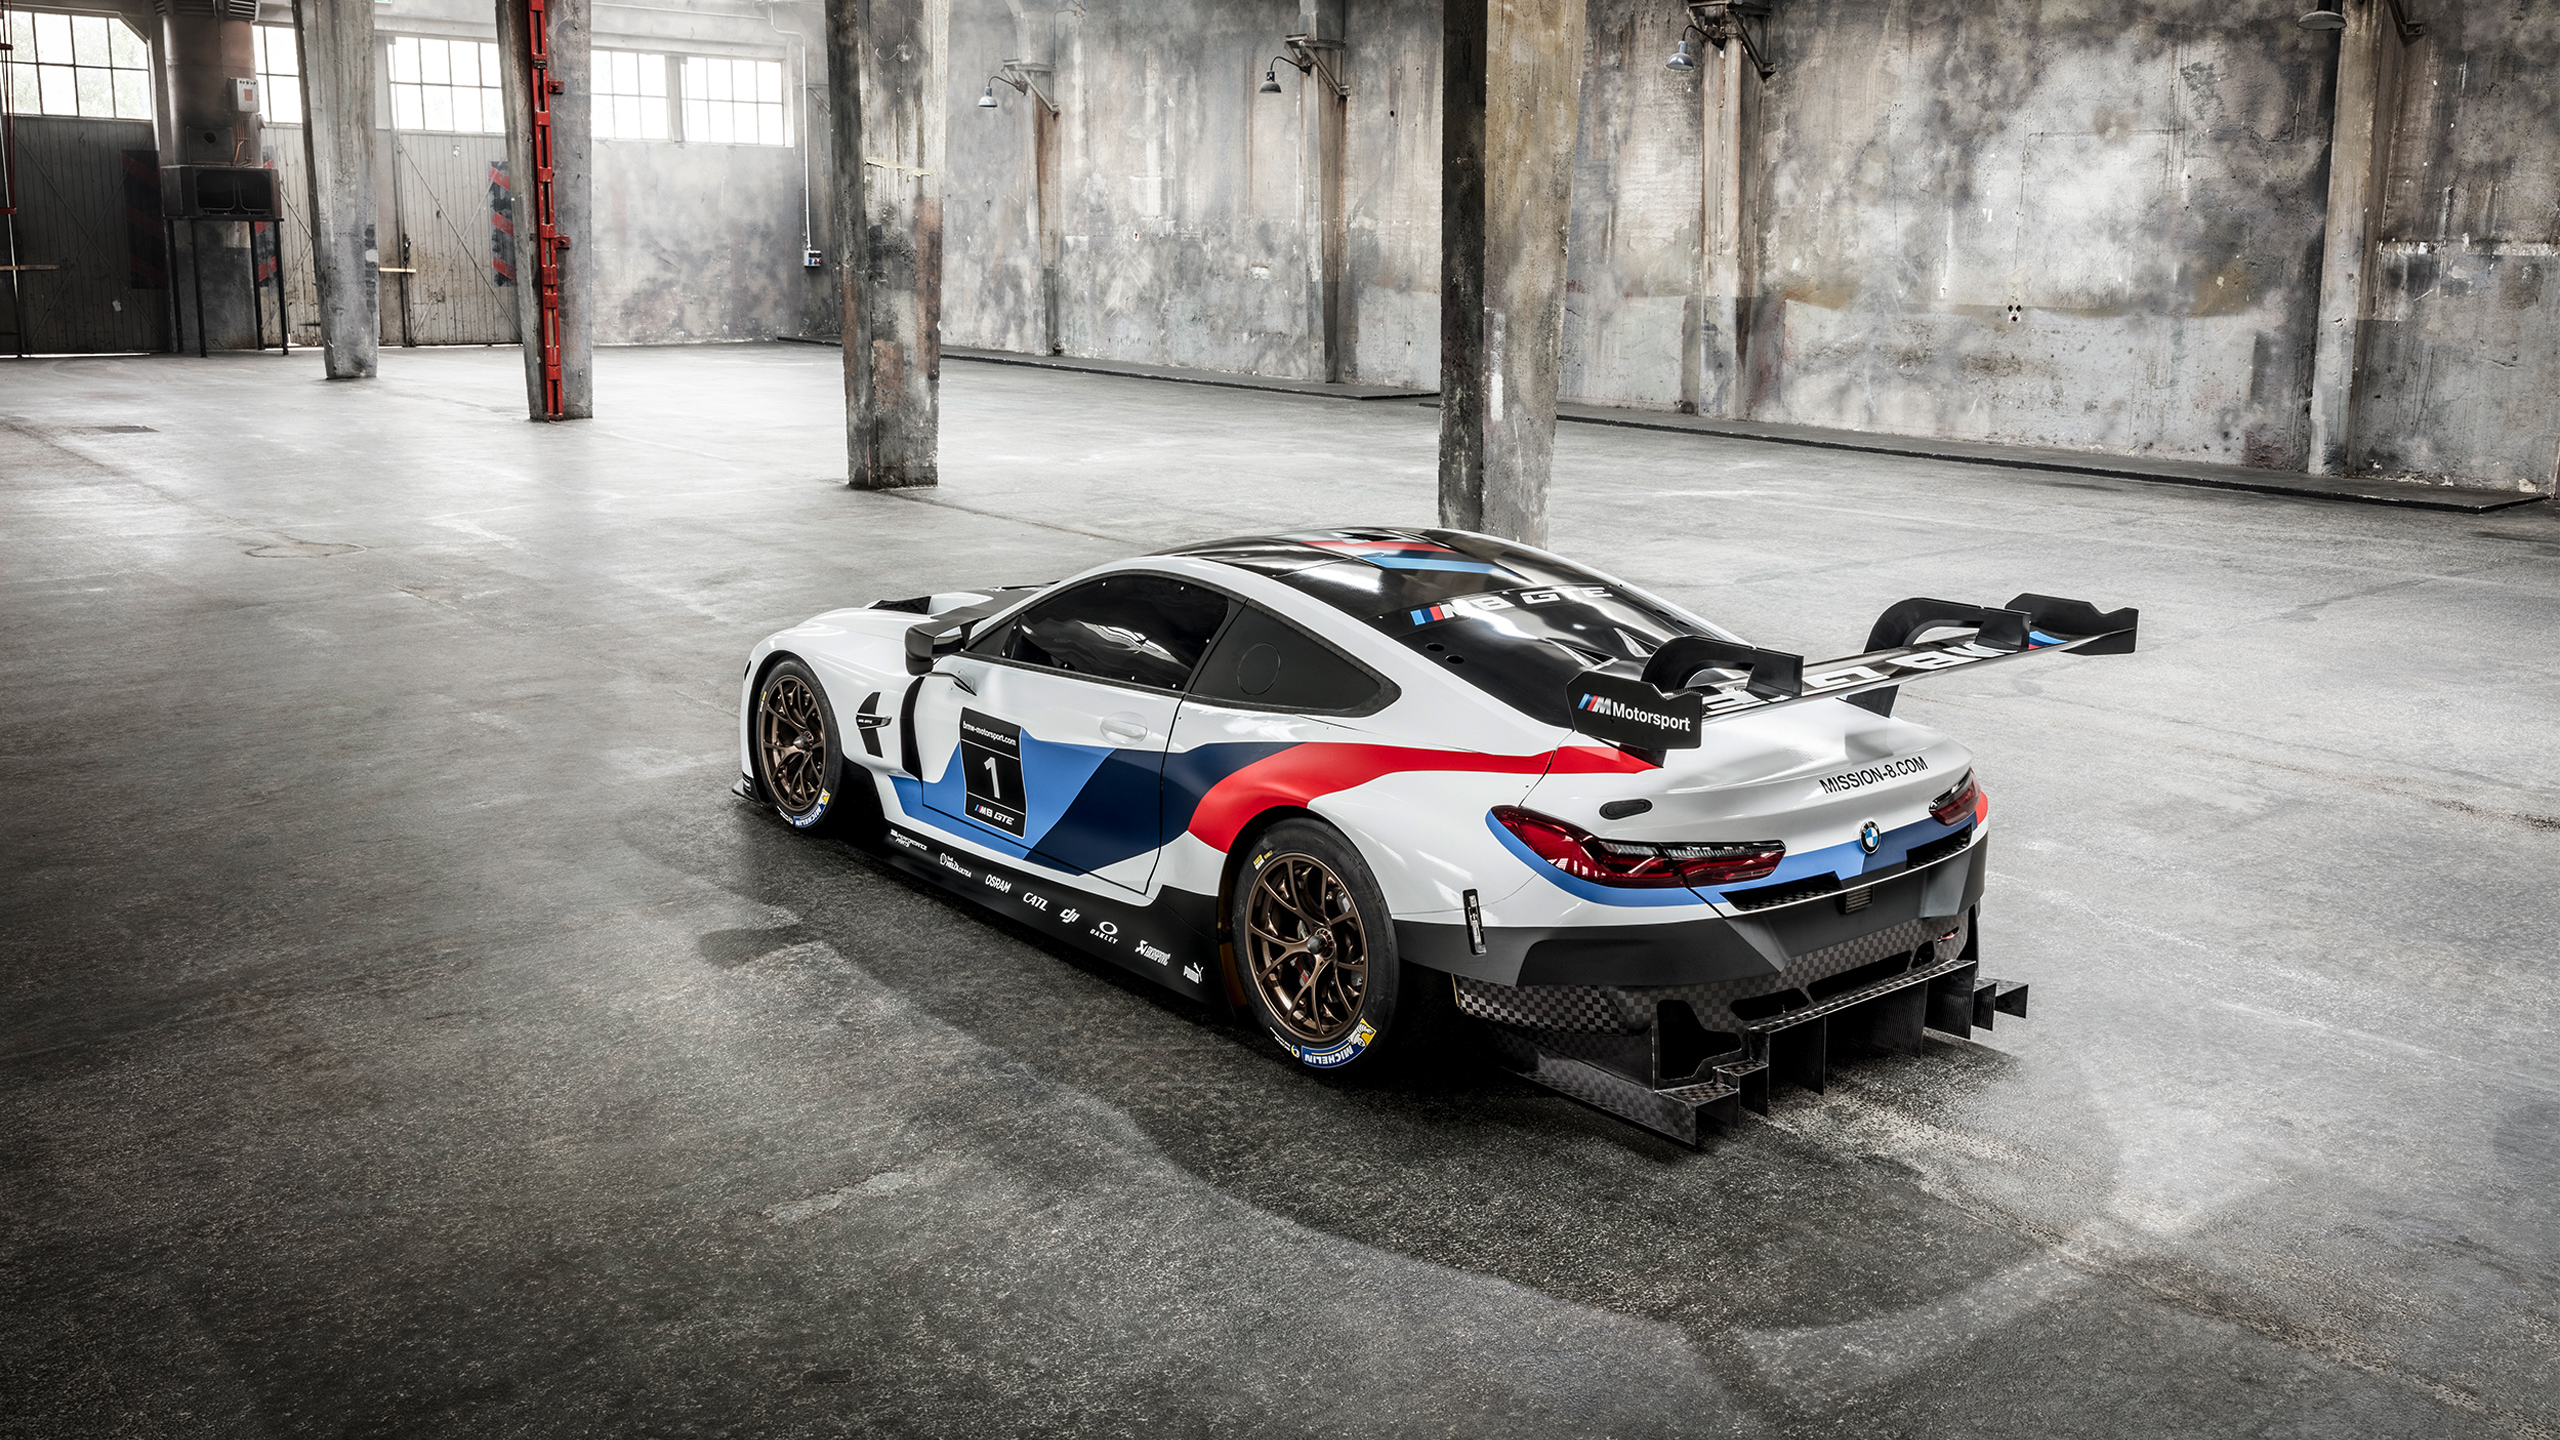 porsche wec 2017 with 2018 Bmw M8 Gte Wallpapers on Logotipos De Las Marcas De Coches Bmw additionally La Porsche 911 Rsr 2017 Partiellement Devoilee besides Porsche 991 Gt2 Rs also Felipe Massa as well Brdc Formula 4 To Switch To Fia F4 Spec Chassis For The Future.